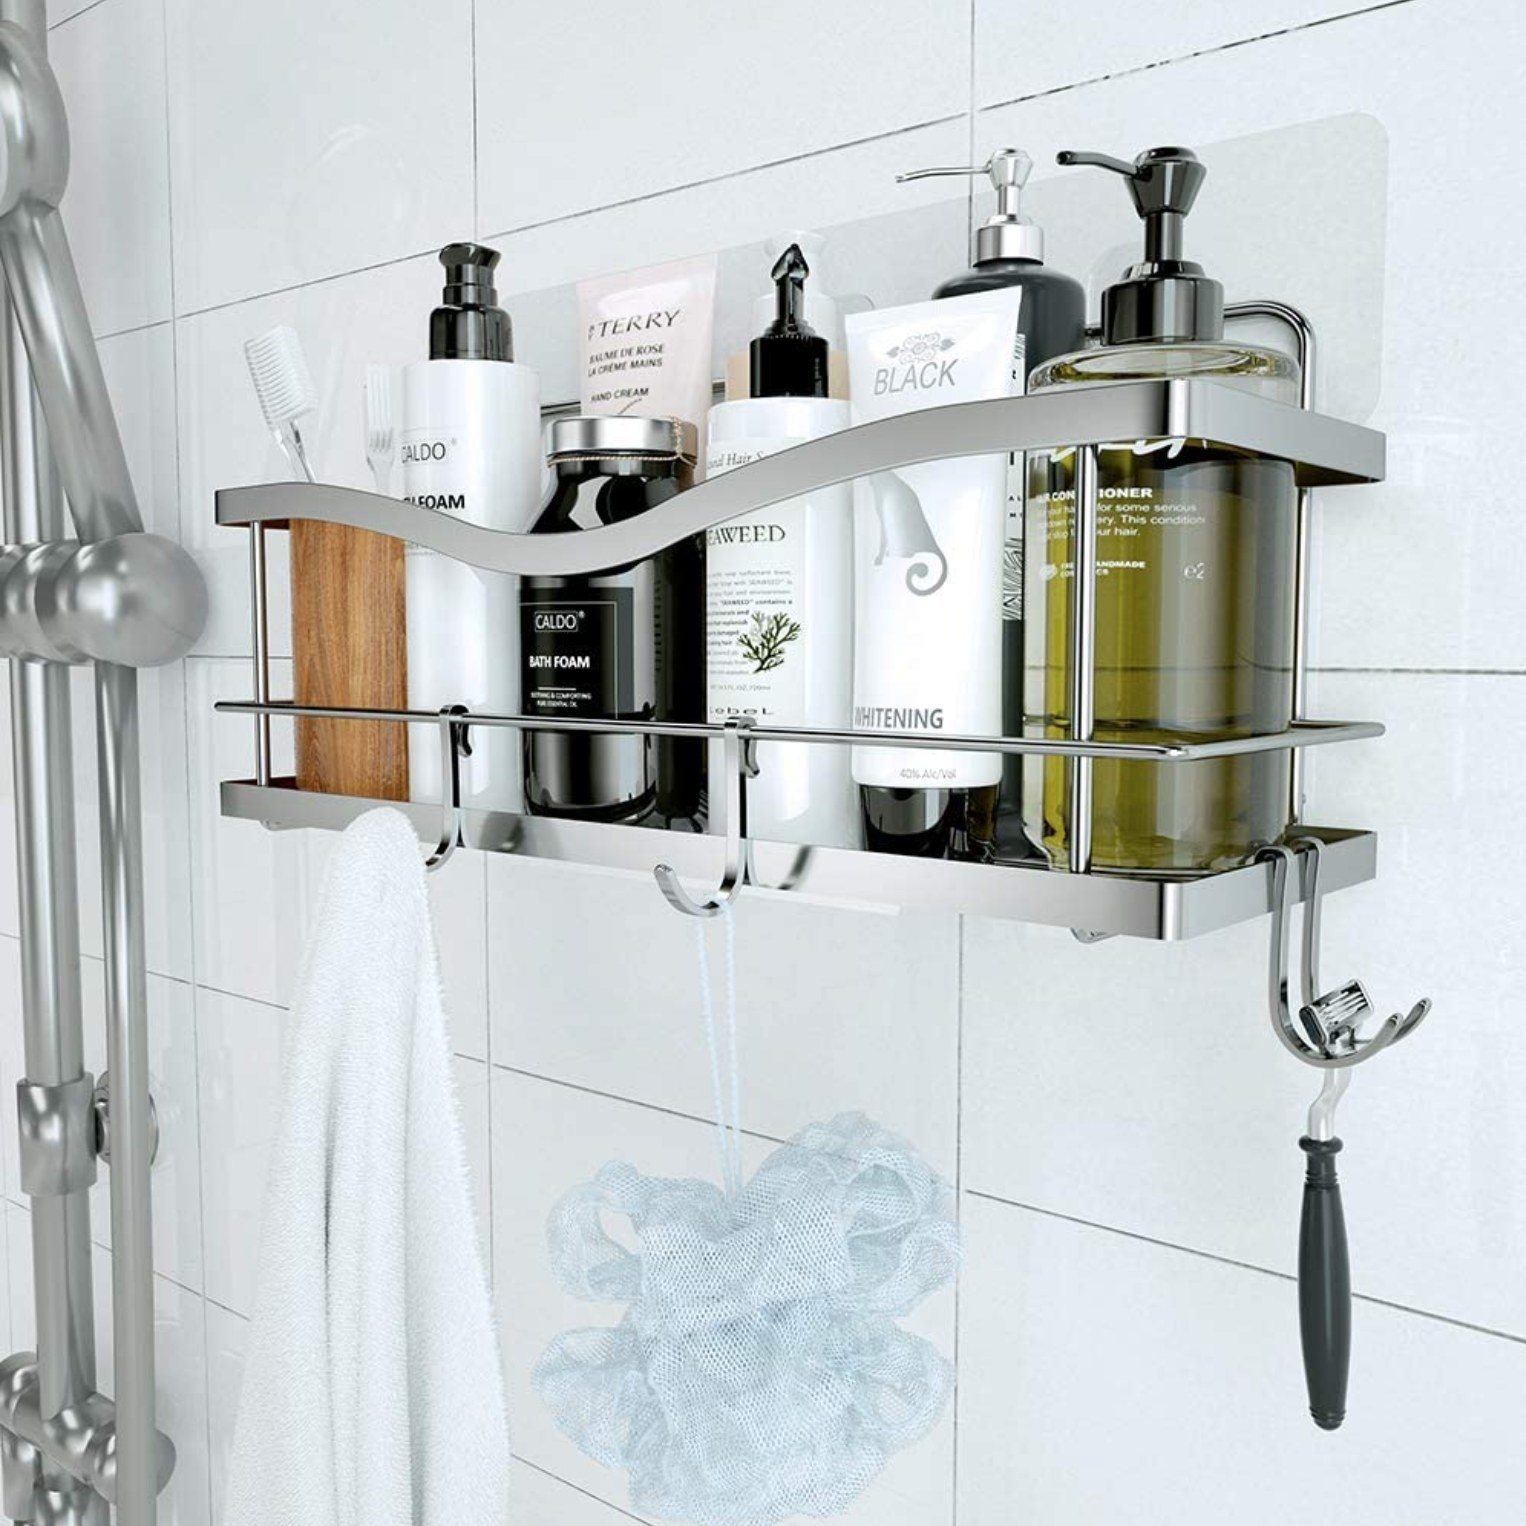 The shower caddy in silver with products on it